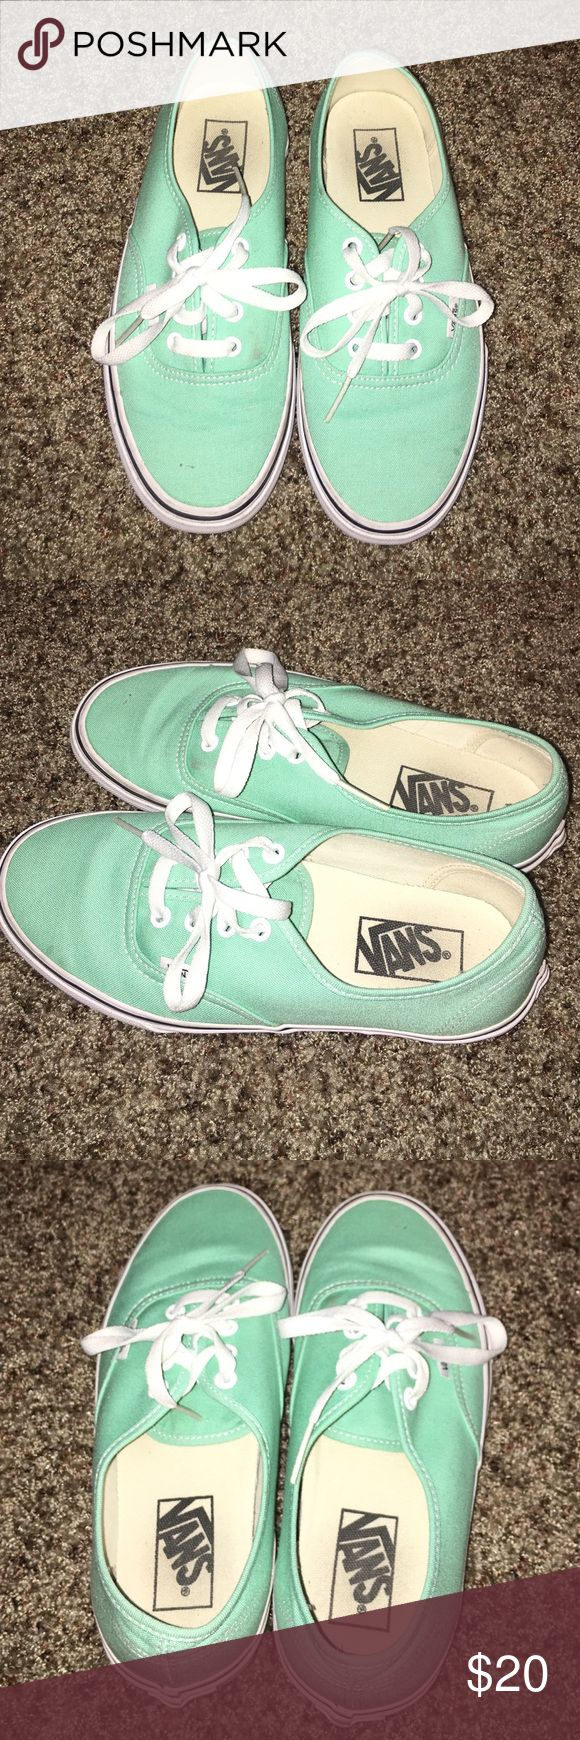 {24 HOUR SALE} Vans: mint vans Mint vans. Slightly dirty but not bad. They'll clean in the washer! Size 7 in women's. Men's in 5.5. Vans Shoes Sneakers